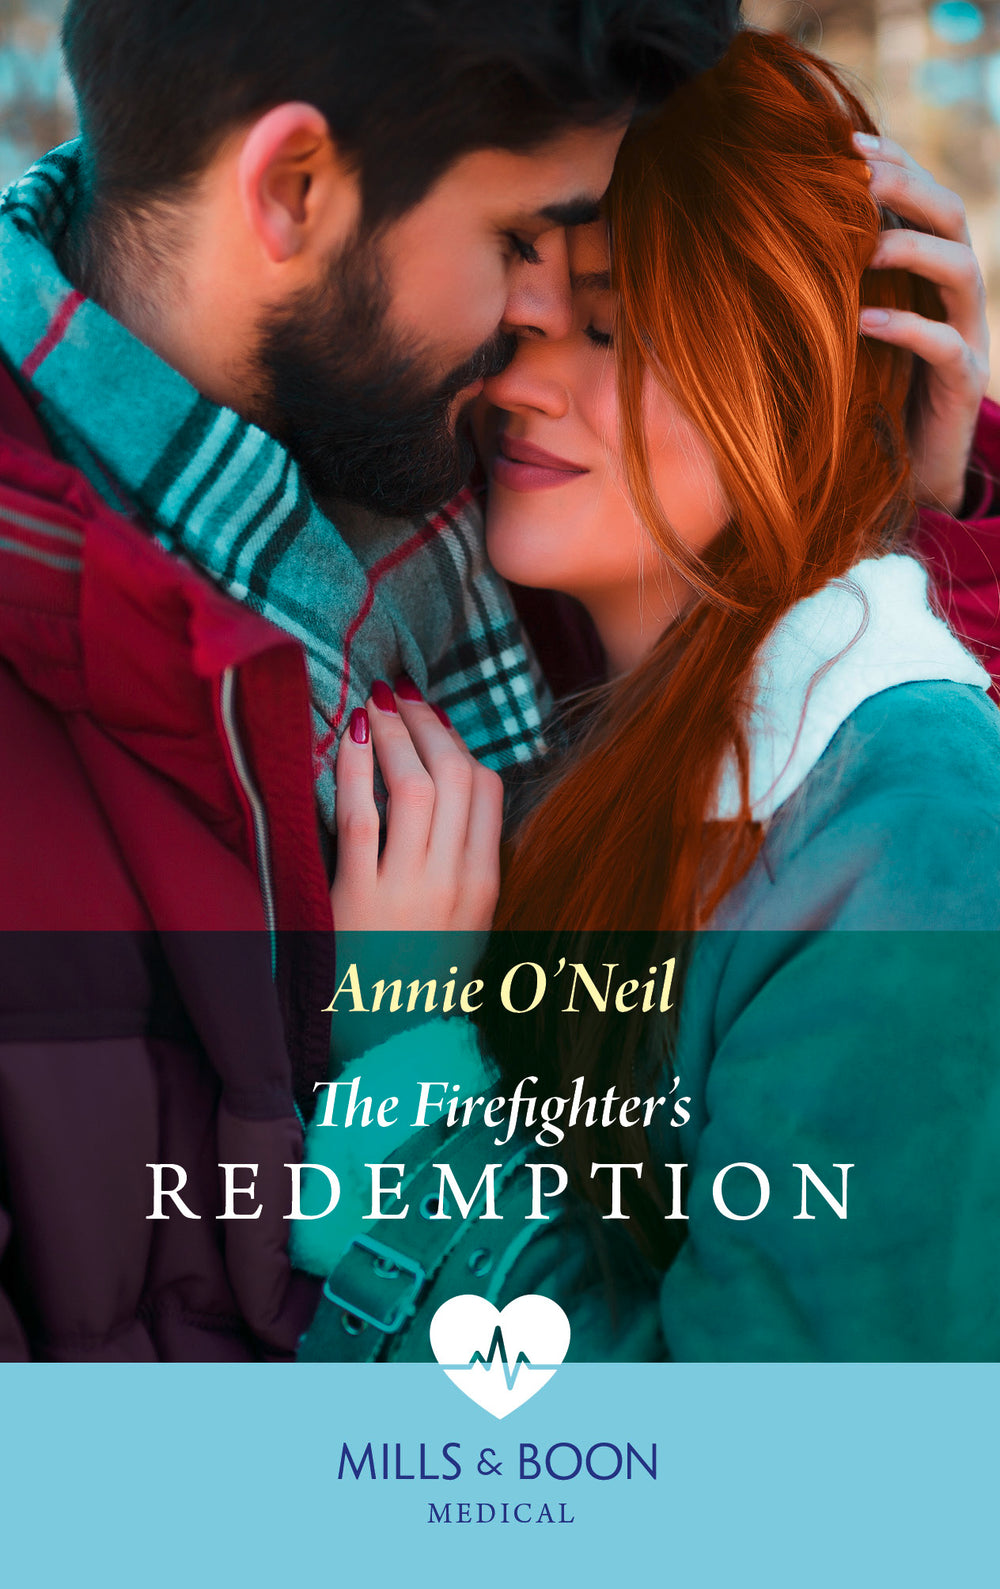 The Firefighter's Redemption - Chapter 13